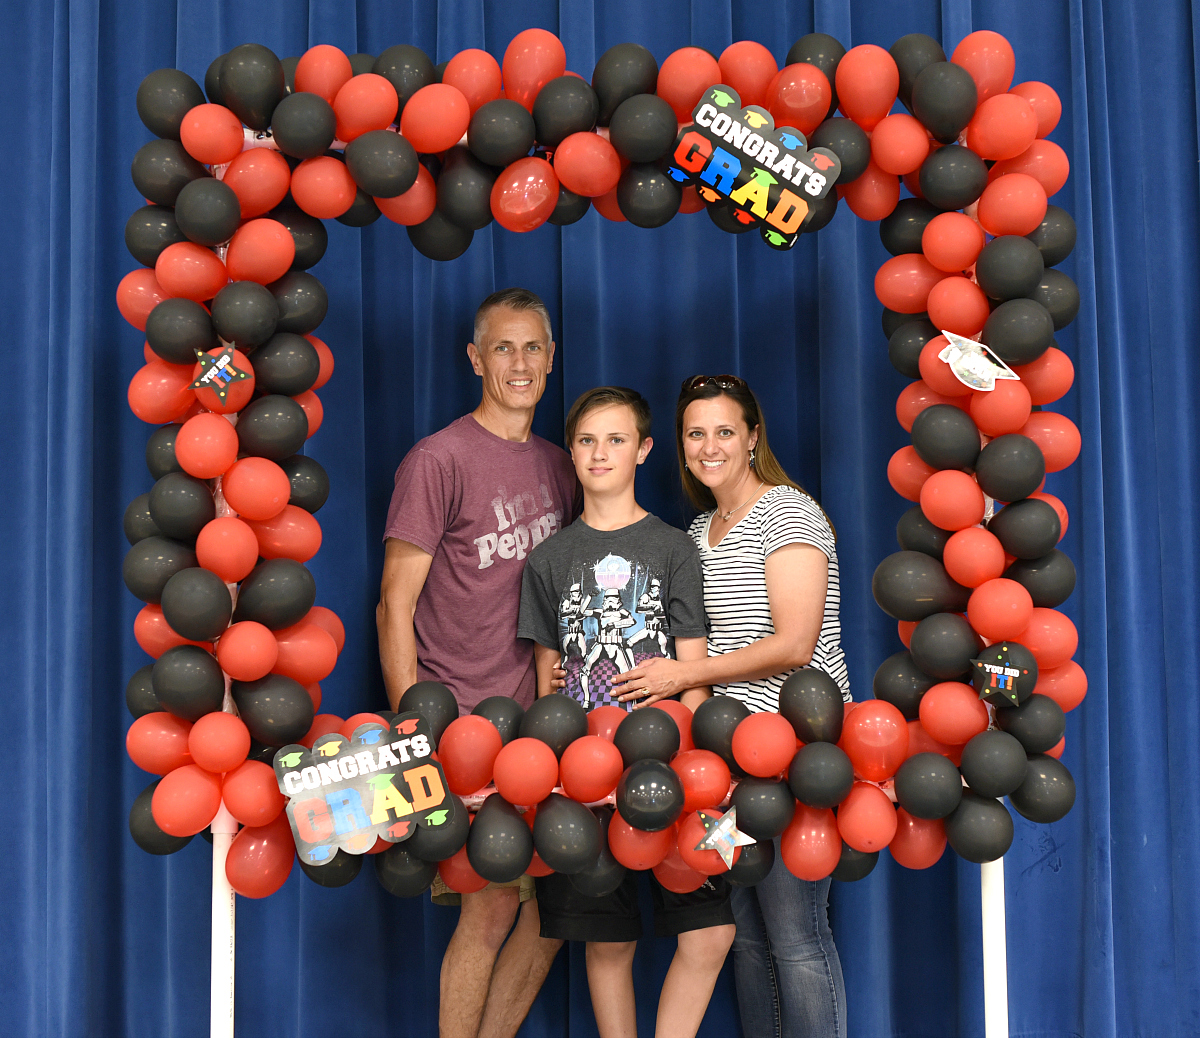 DIY Party Photo Booth made with Balloons